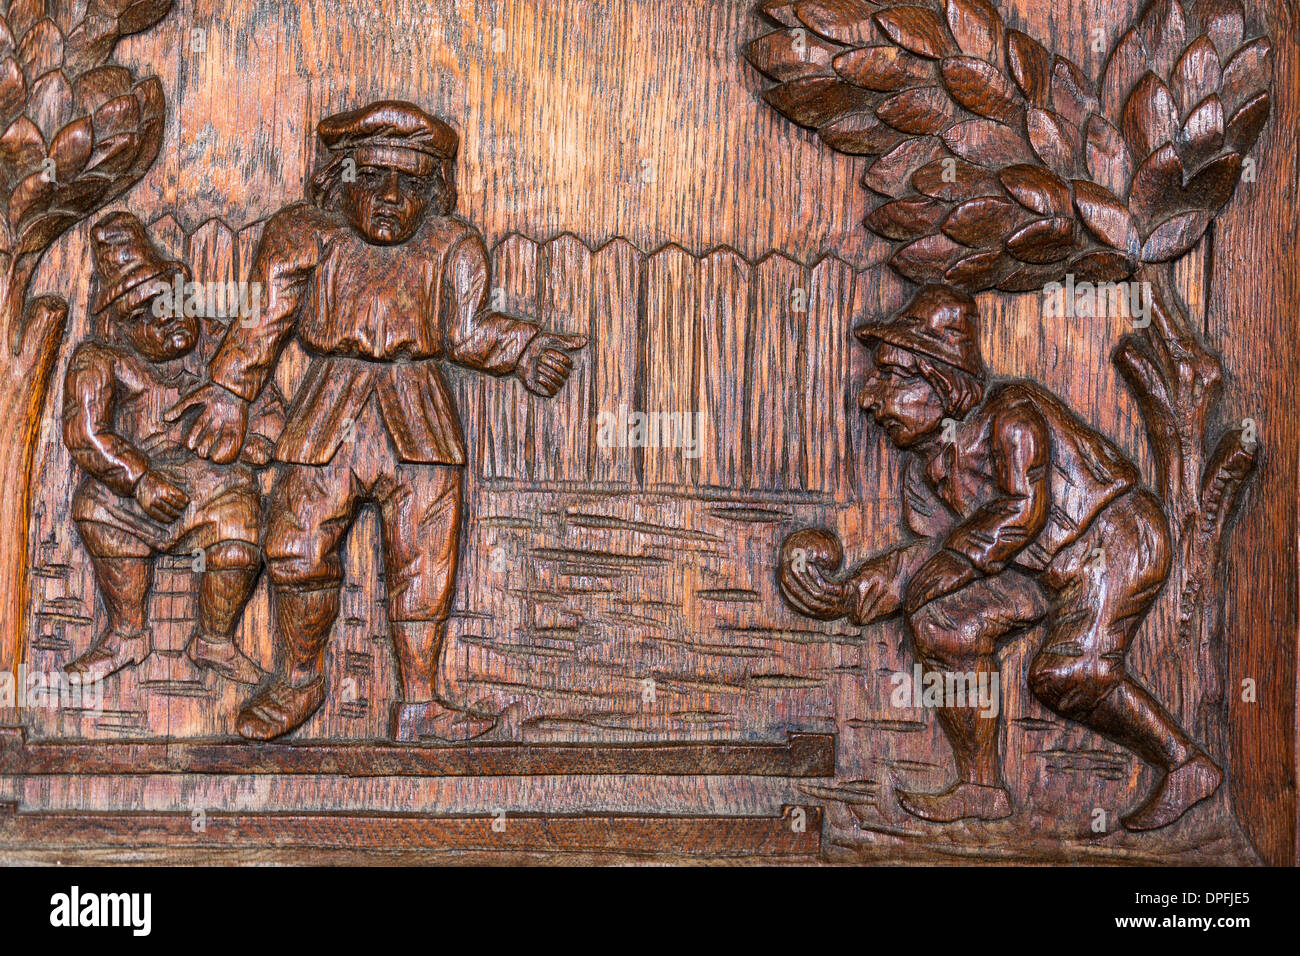 Wood carving on furniture panels stock photo royalty free